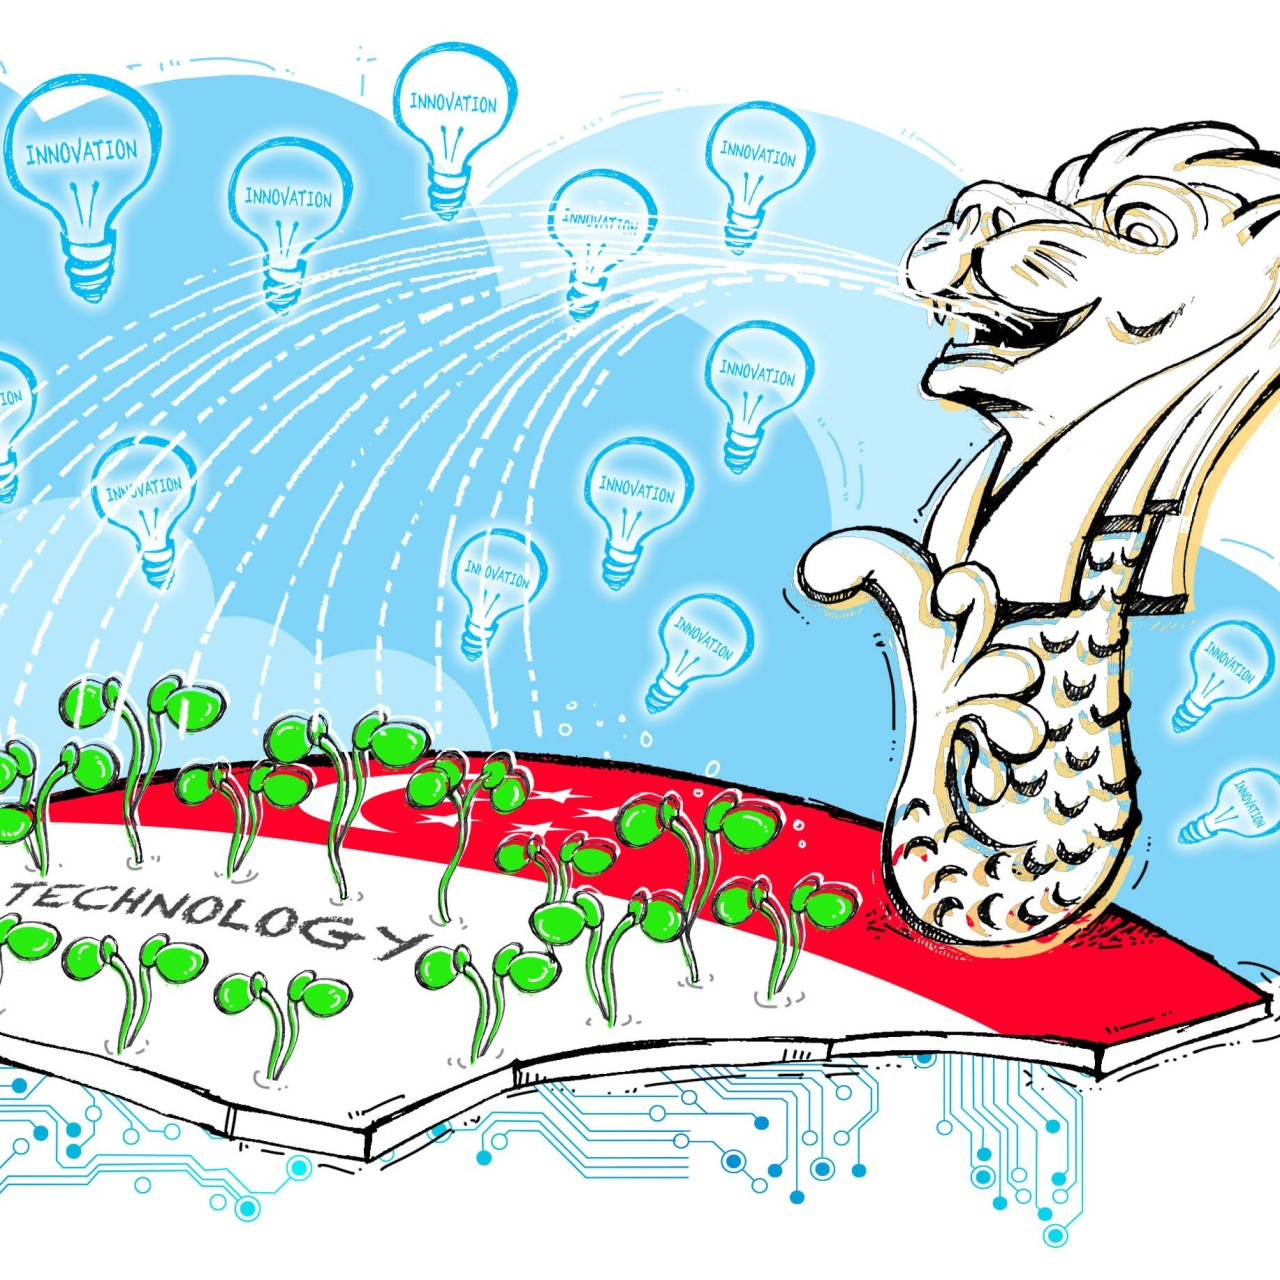 Creating an innovation culture - Singapore's not-so-secret